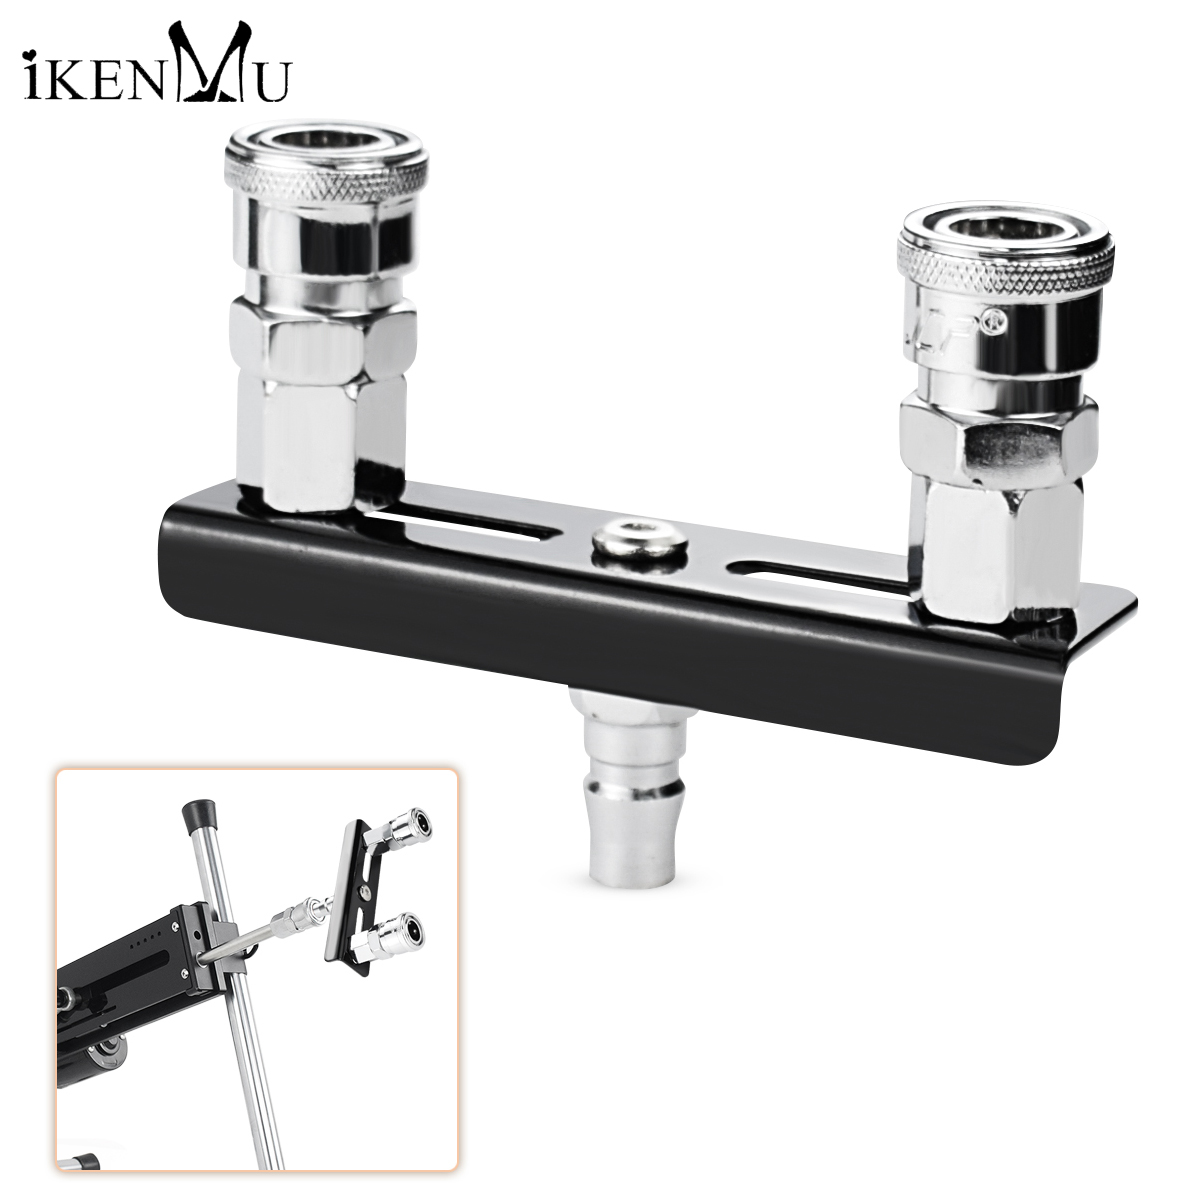 iKenmu Metal Double Quick Connector <font><b>Sex</b></font> <font><b>Machine</b></font> <font><b>Dildos</b></font> Holder <font><b>Attachment</b></font> Vac-u-Lock <font><b>Dildos</b></font> Holder <font><b>Attachment</b></font> Adult <font><b>Sex</b></font> Products image